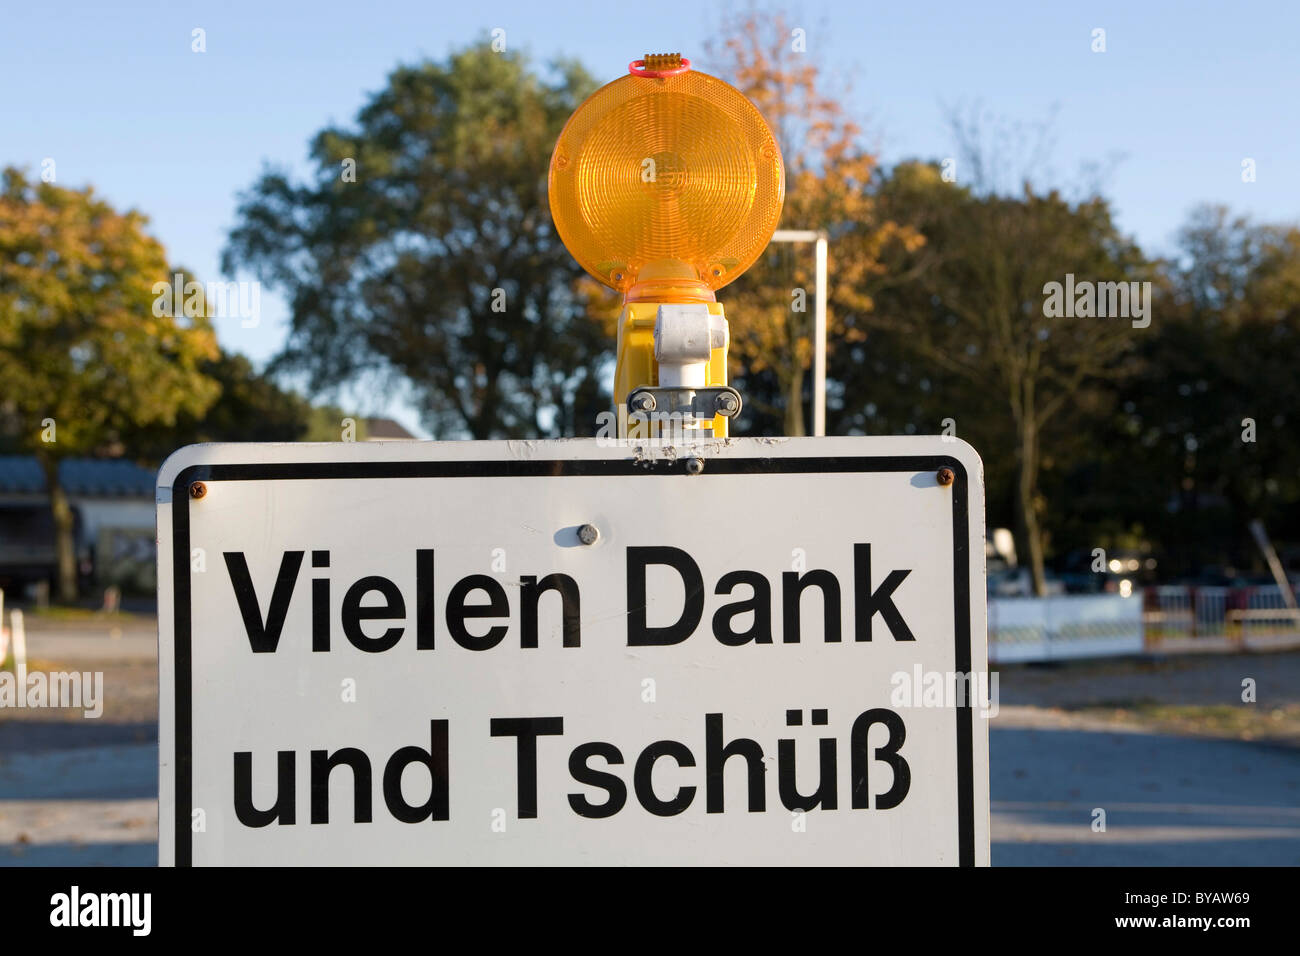 Sign, Vielen Dank und Tschuess, German for thank you and goodbye, Hamburg, Germany, Europe - Stock Image